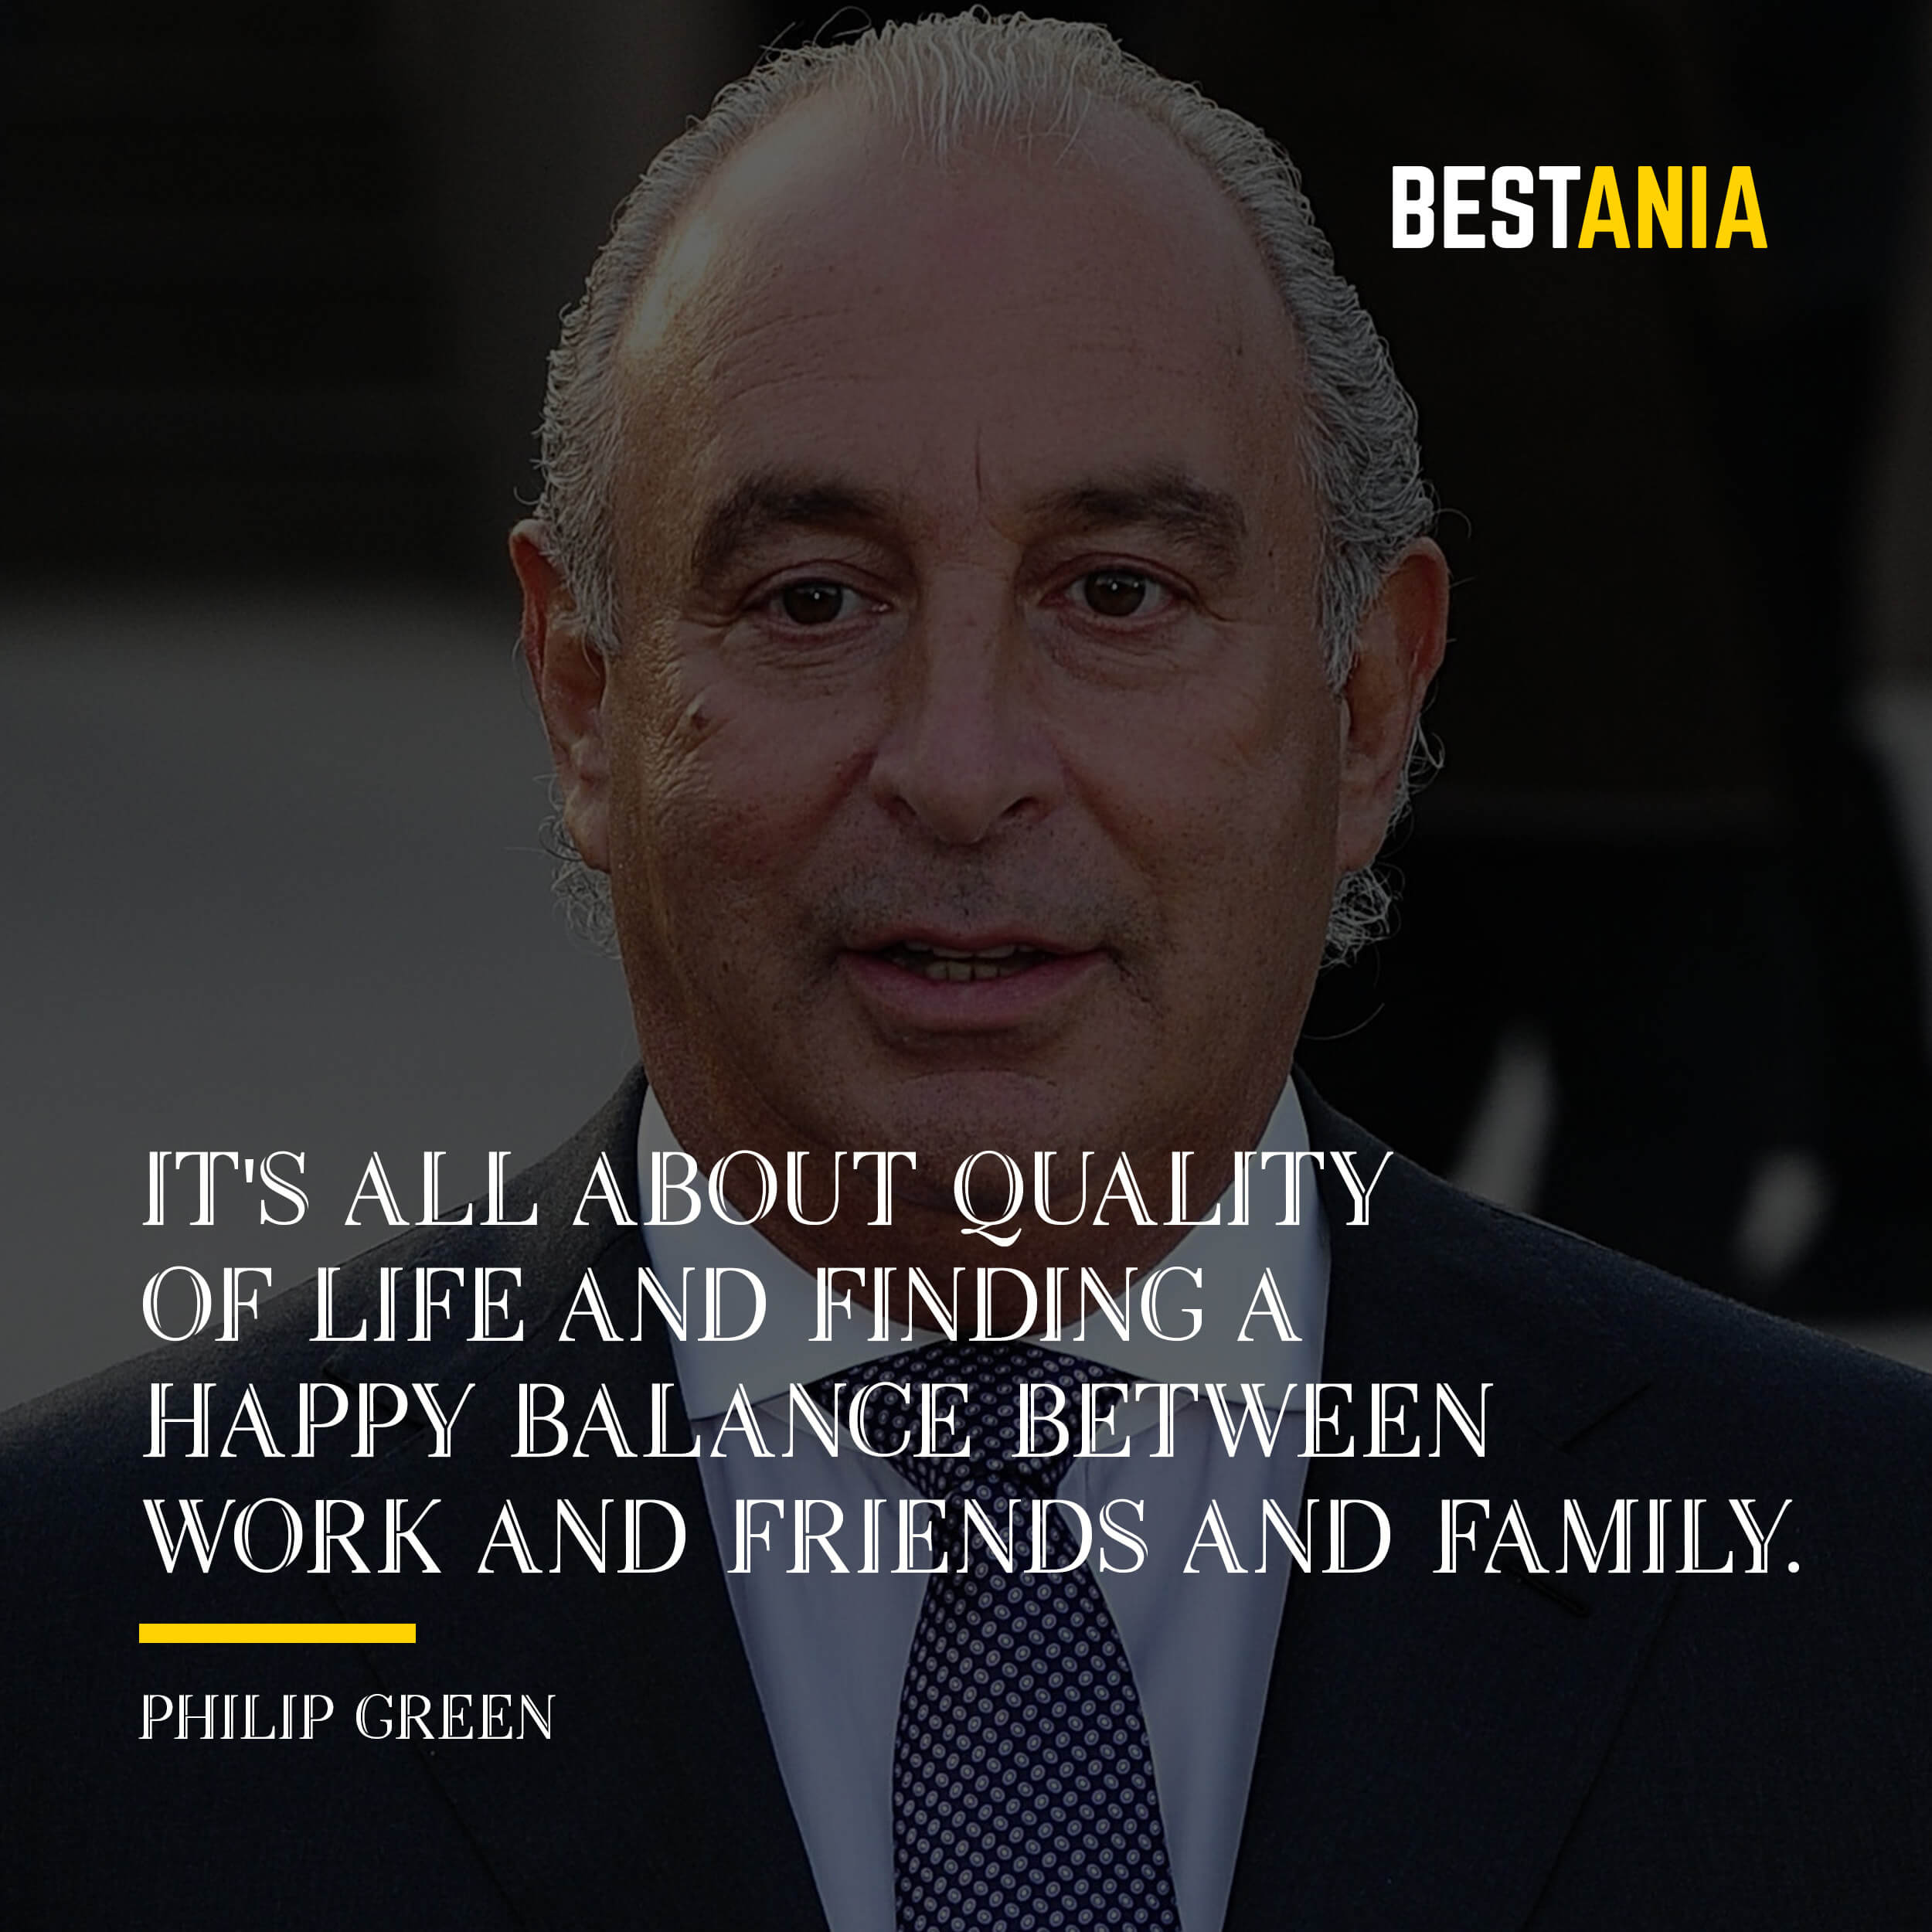 """""""IT'S ALL ABOUT QUALITY OF LIFE AND FINDING A HAPPY BALANCE BETWEEN WORK AND FRIENDS AND FAMILY.""""  PHILIP GREEN"""